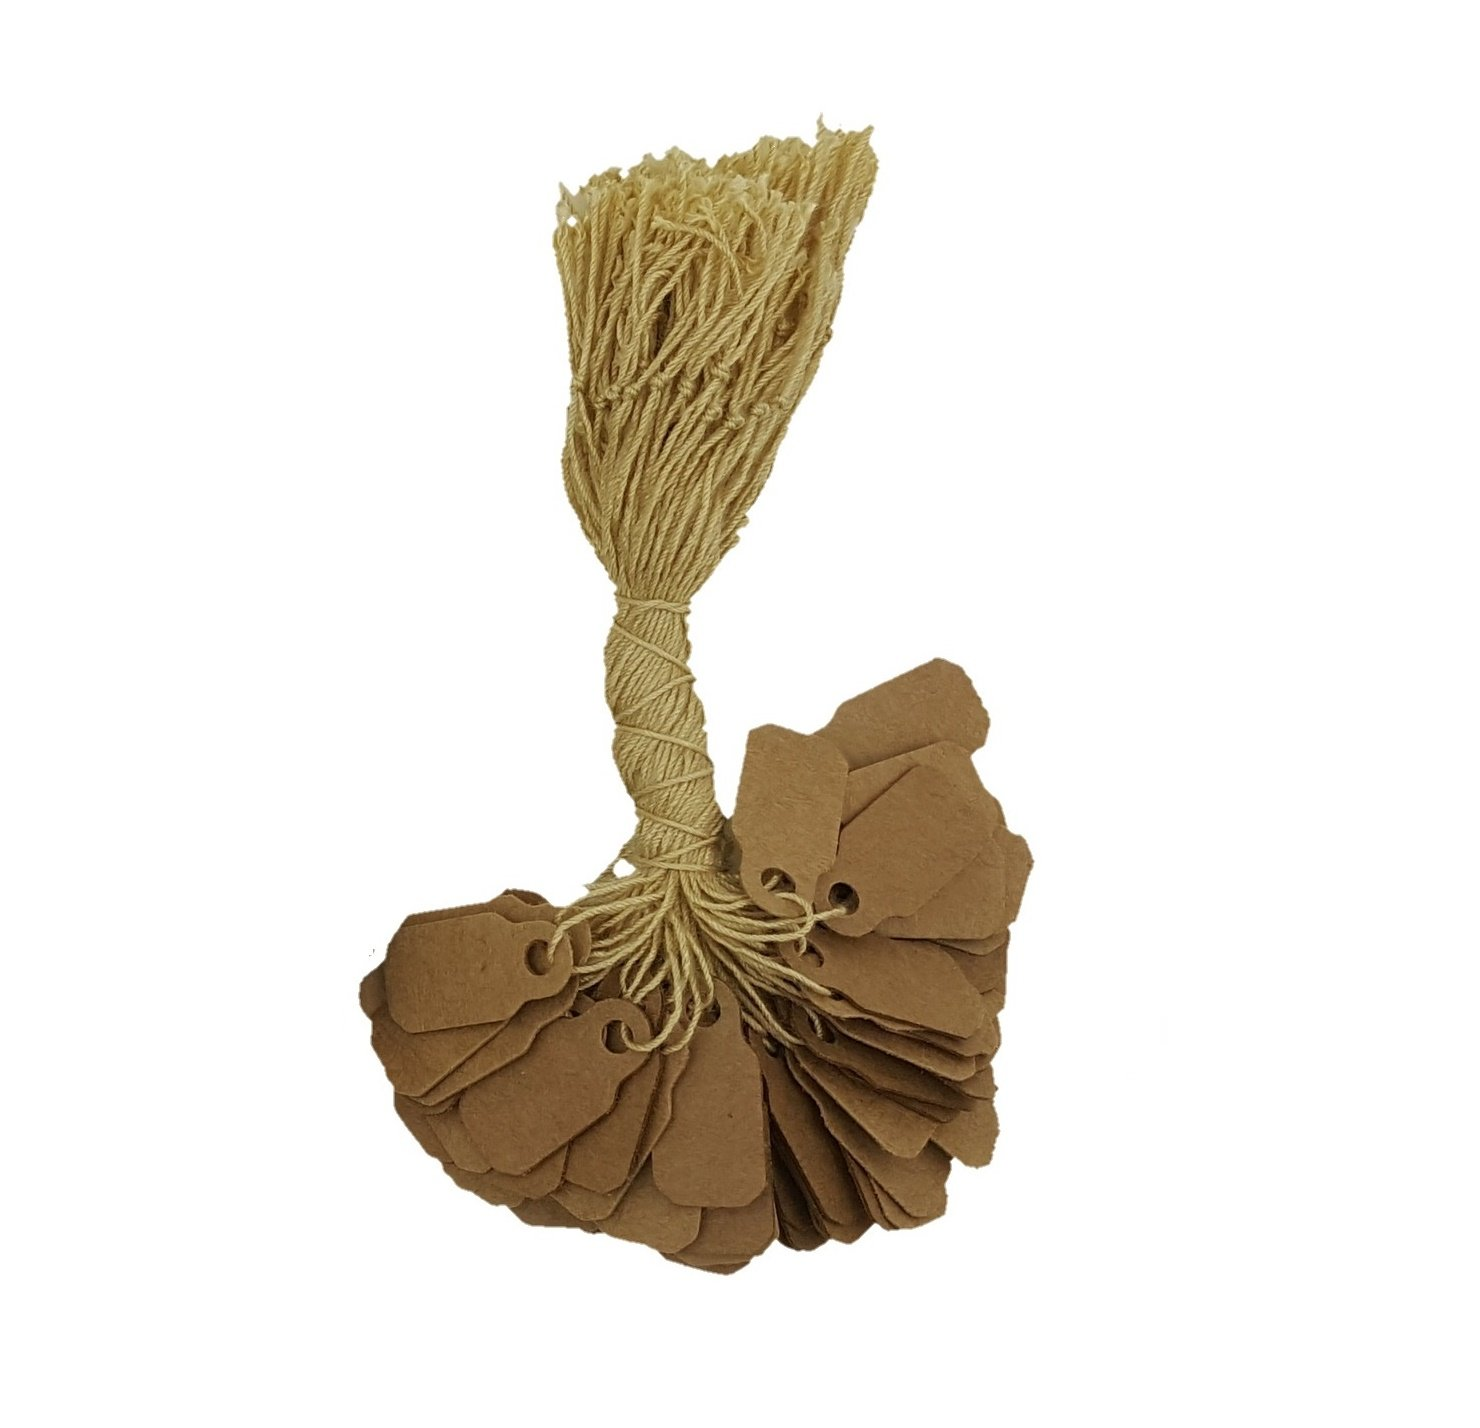 888 Display 100 Paper Kraft String Price Tags Jewelry Ring Sale Display (100 Pcs) 888 Display USA 7881-1